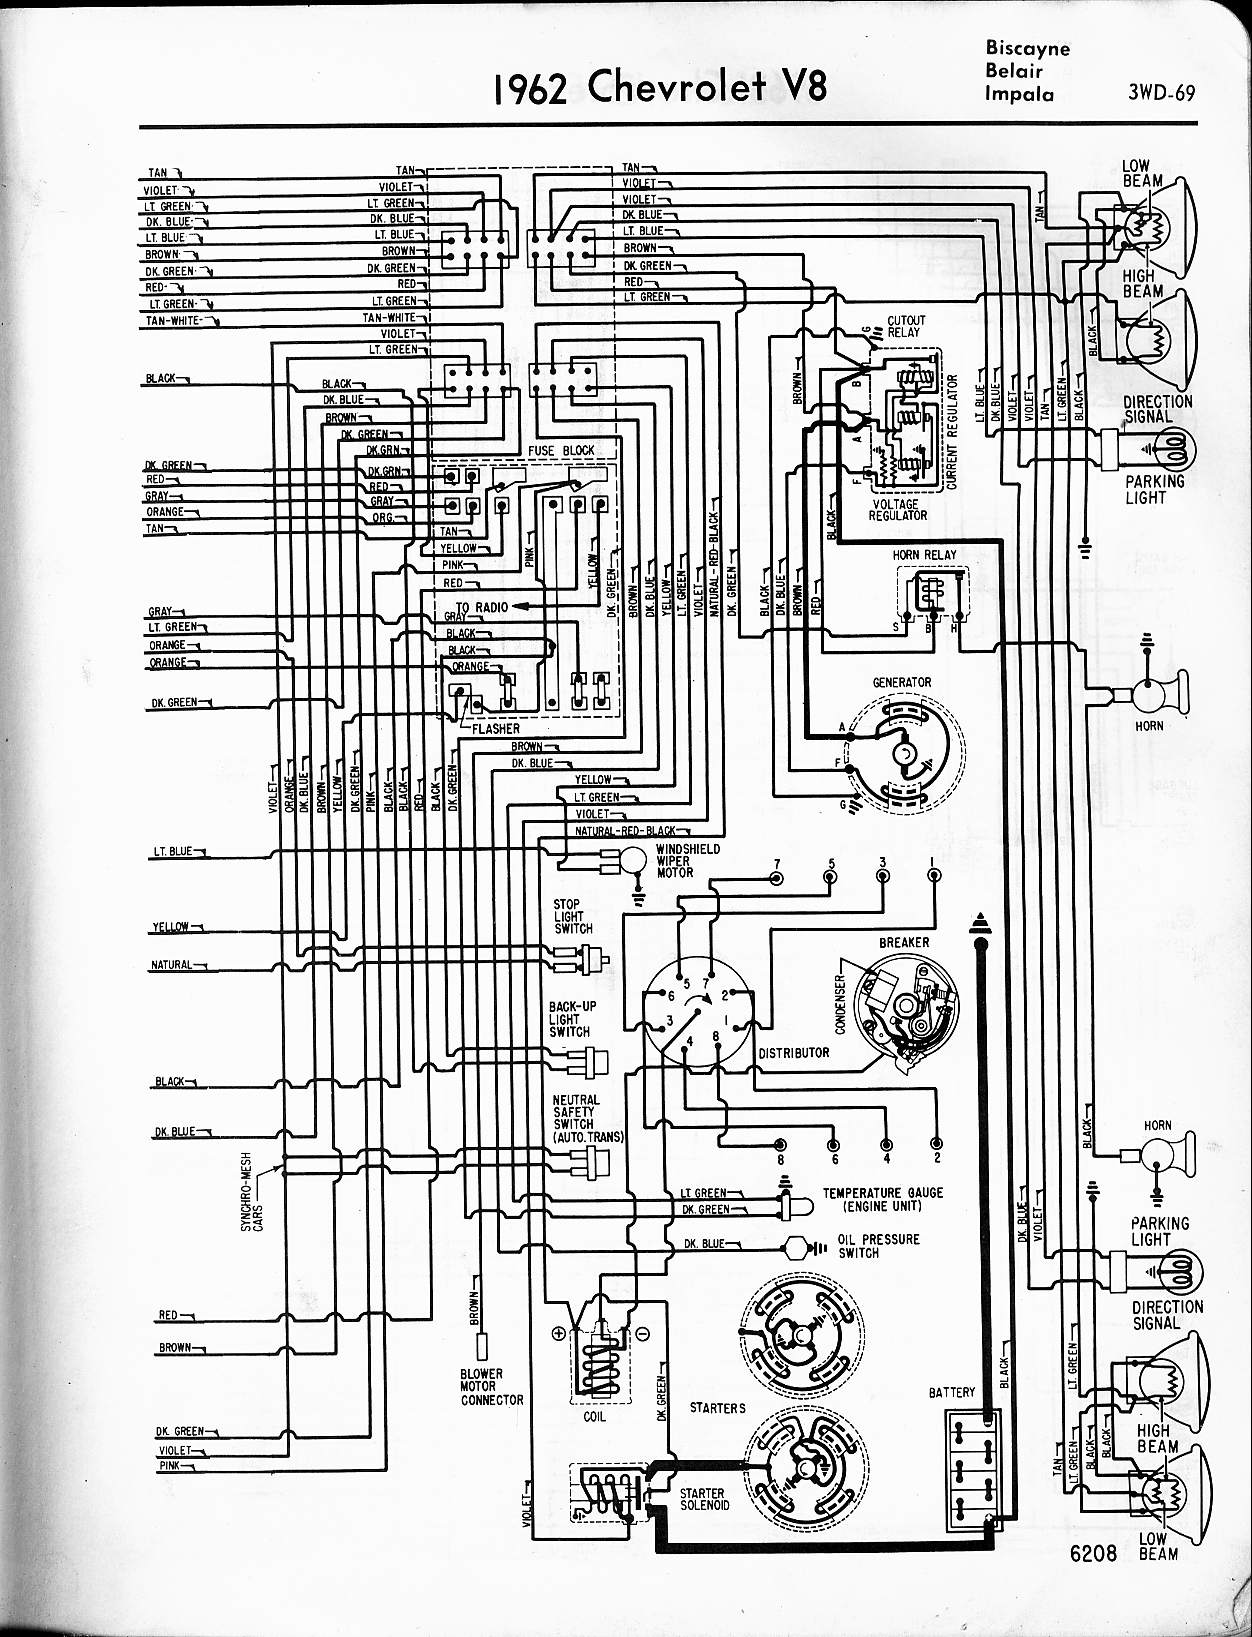 chevy truck turn signal wiring diagram images chevy truck chevy likewise 1964 impala wiring diagram further 1957 283